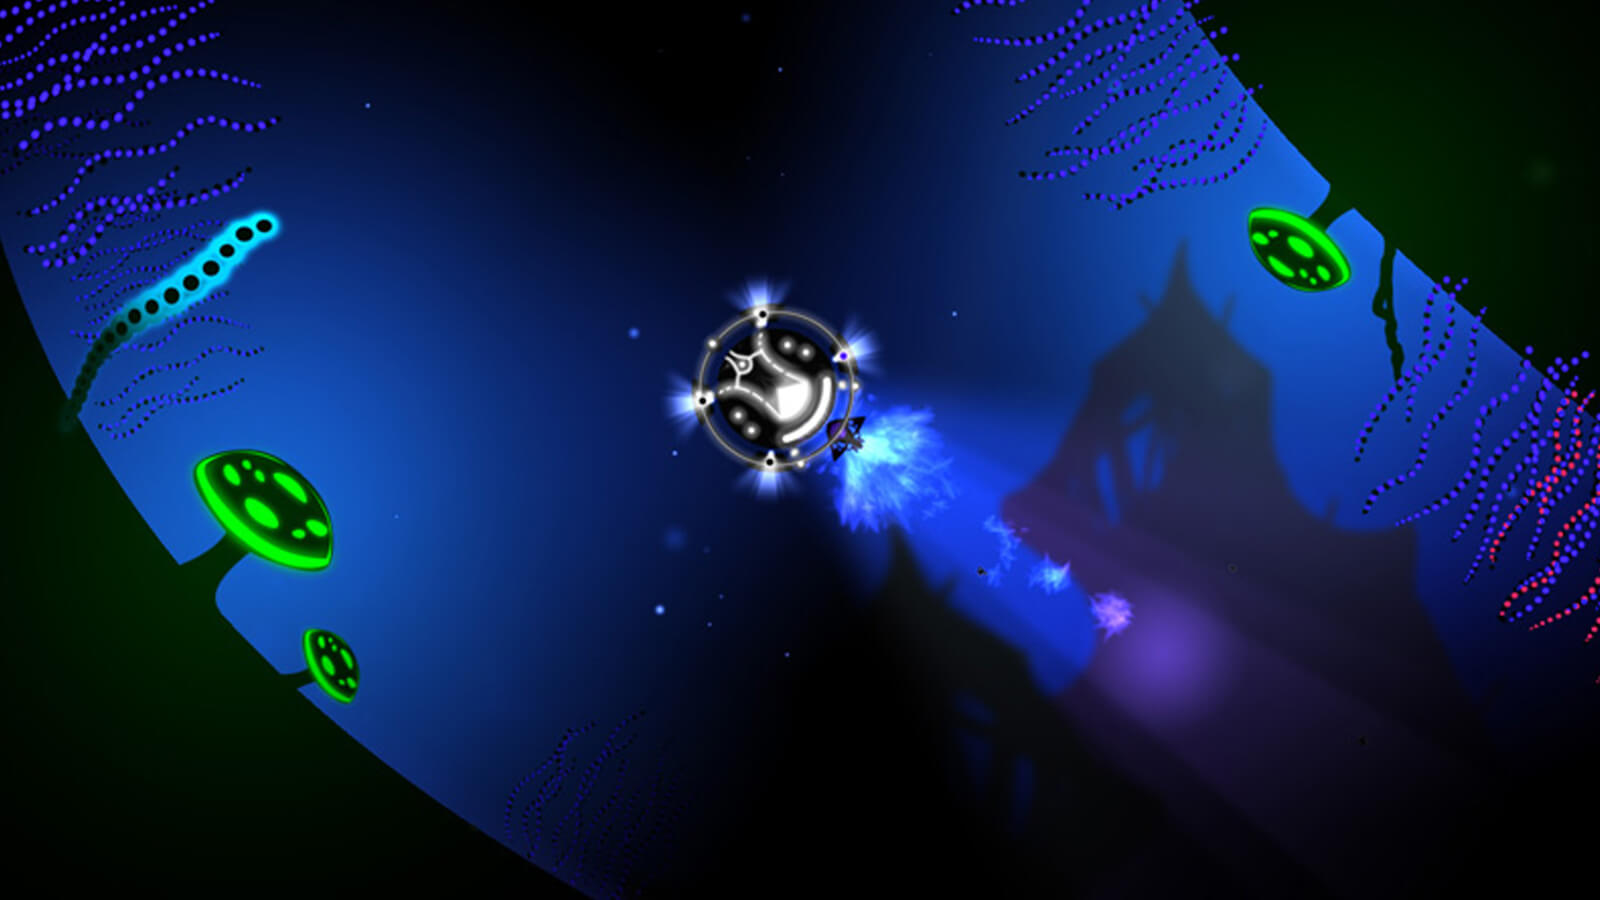 The player's vessel floats through a glowing underwater passage.